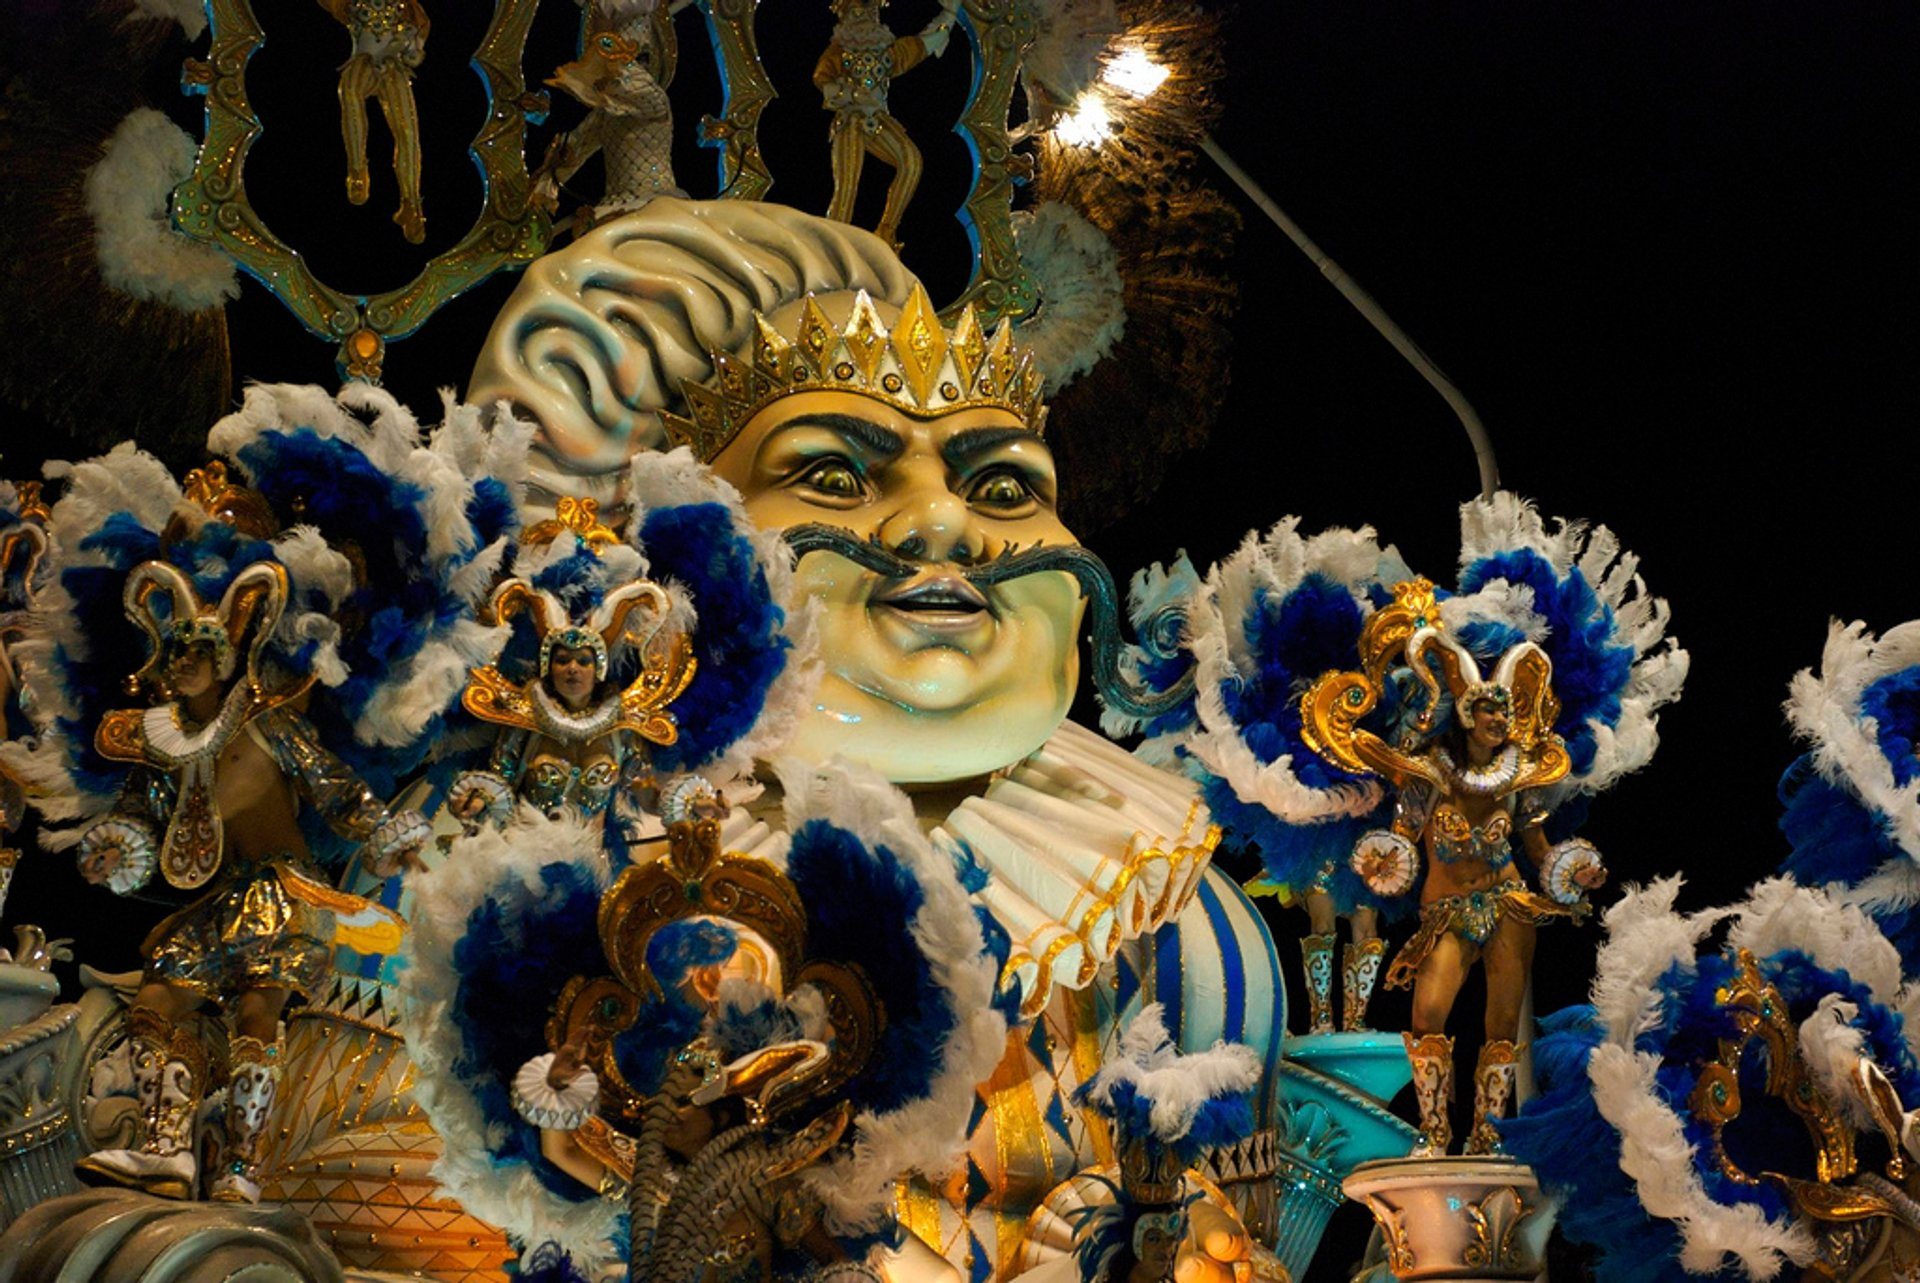 Carnaval del País in Gualeguaychú in Argentina - Best Season 2020